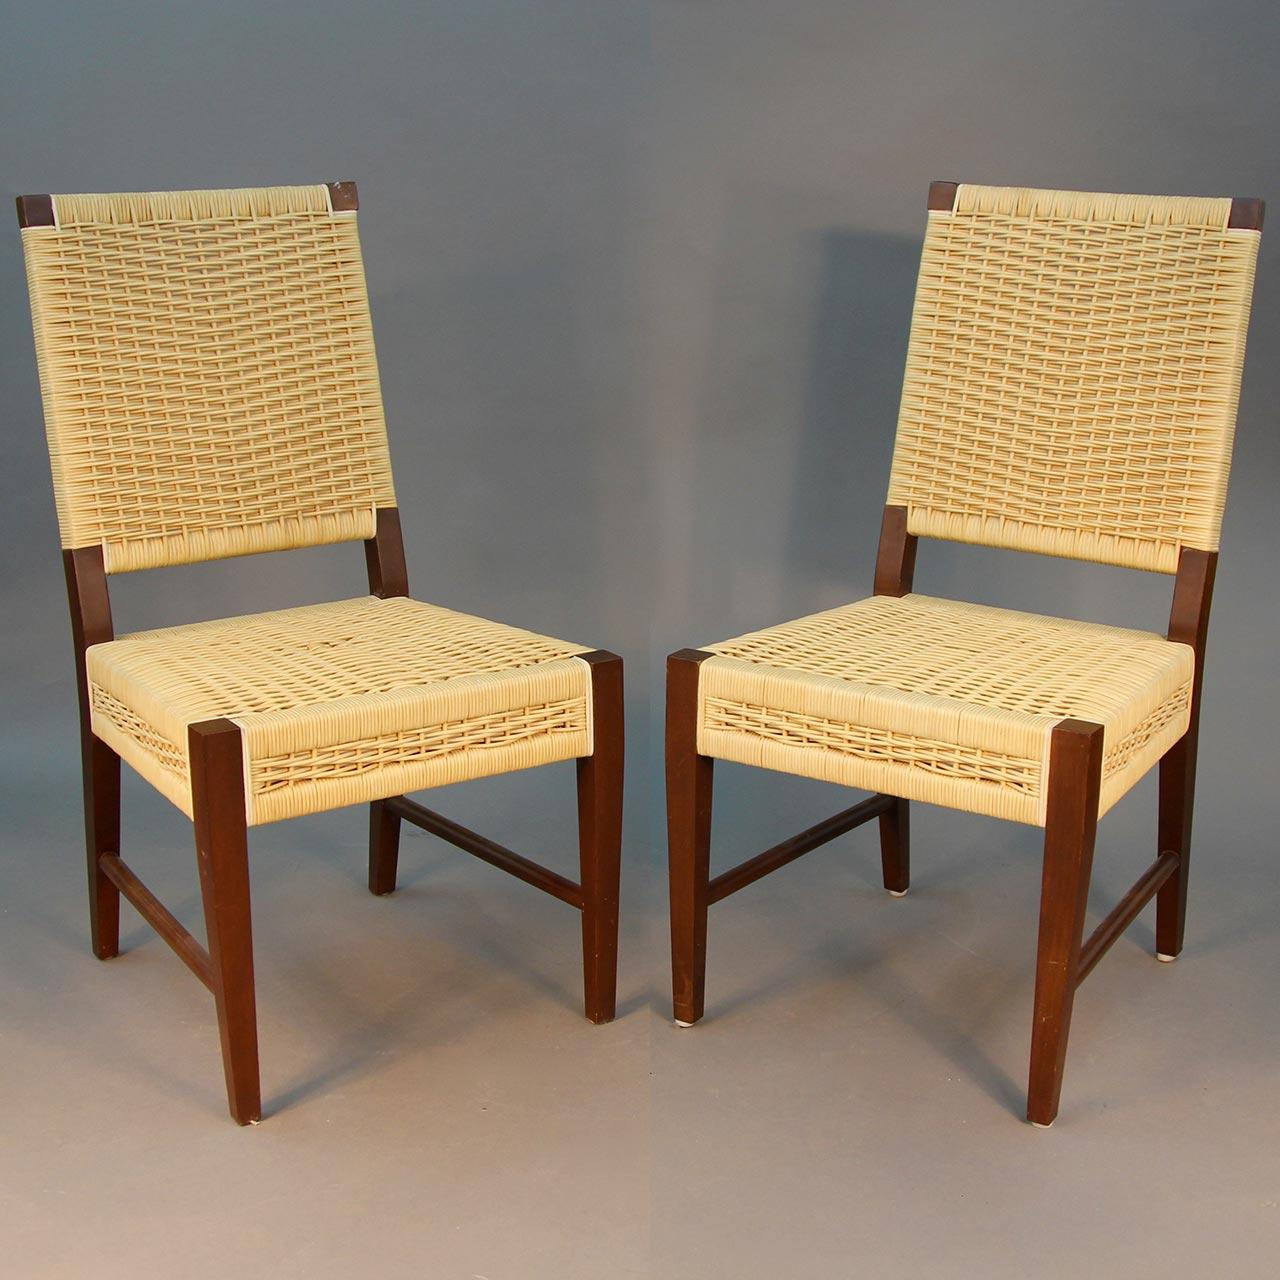 Donghia Dining Chairs With Merbau Wood   Set Of 4   Image 4 Of 9